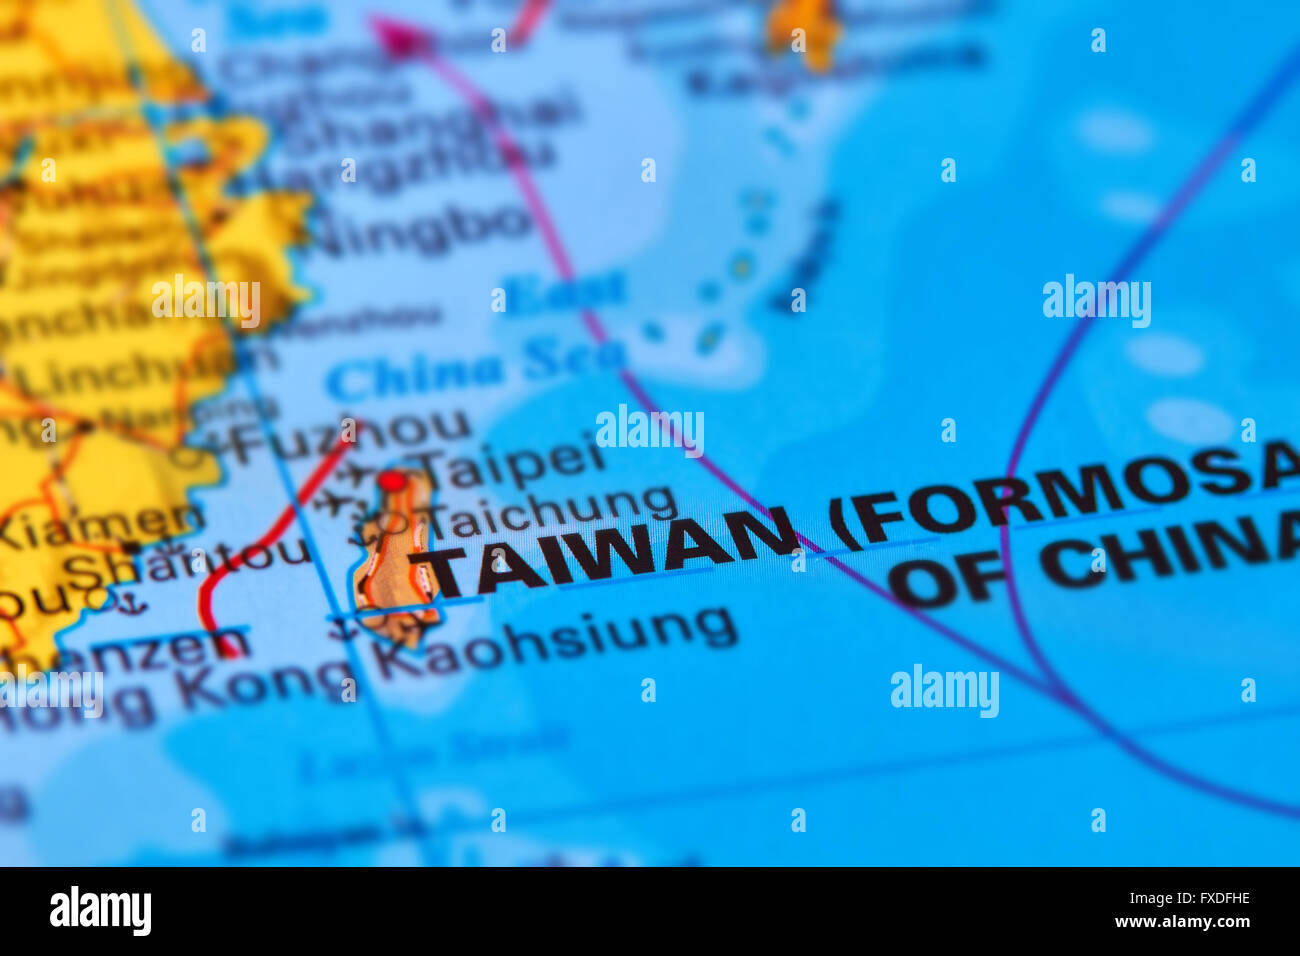 Taiwan Island Asian Country On The World Map Stock Photo 102330522